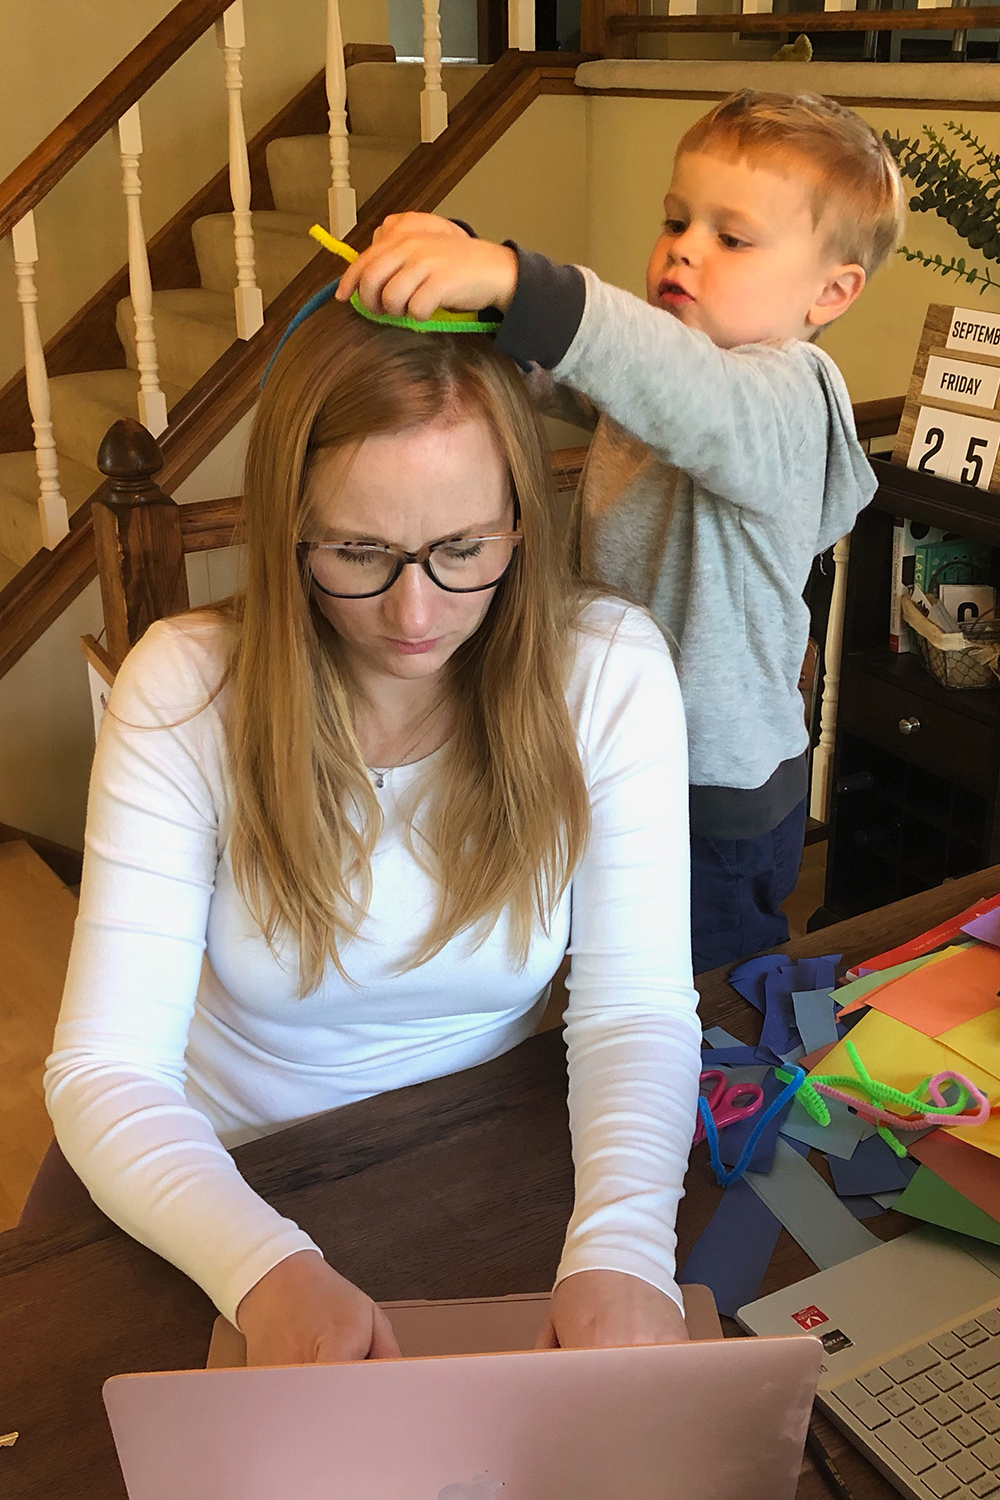 Mom trying to work at home - Managing Your Mental Health While Parenting in a Pandemic